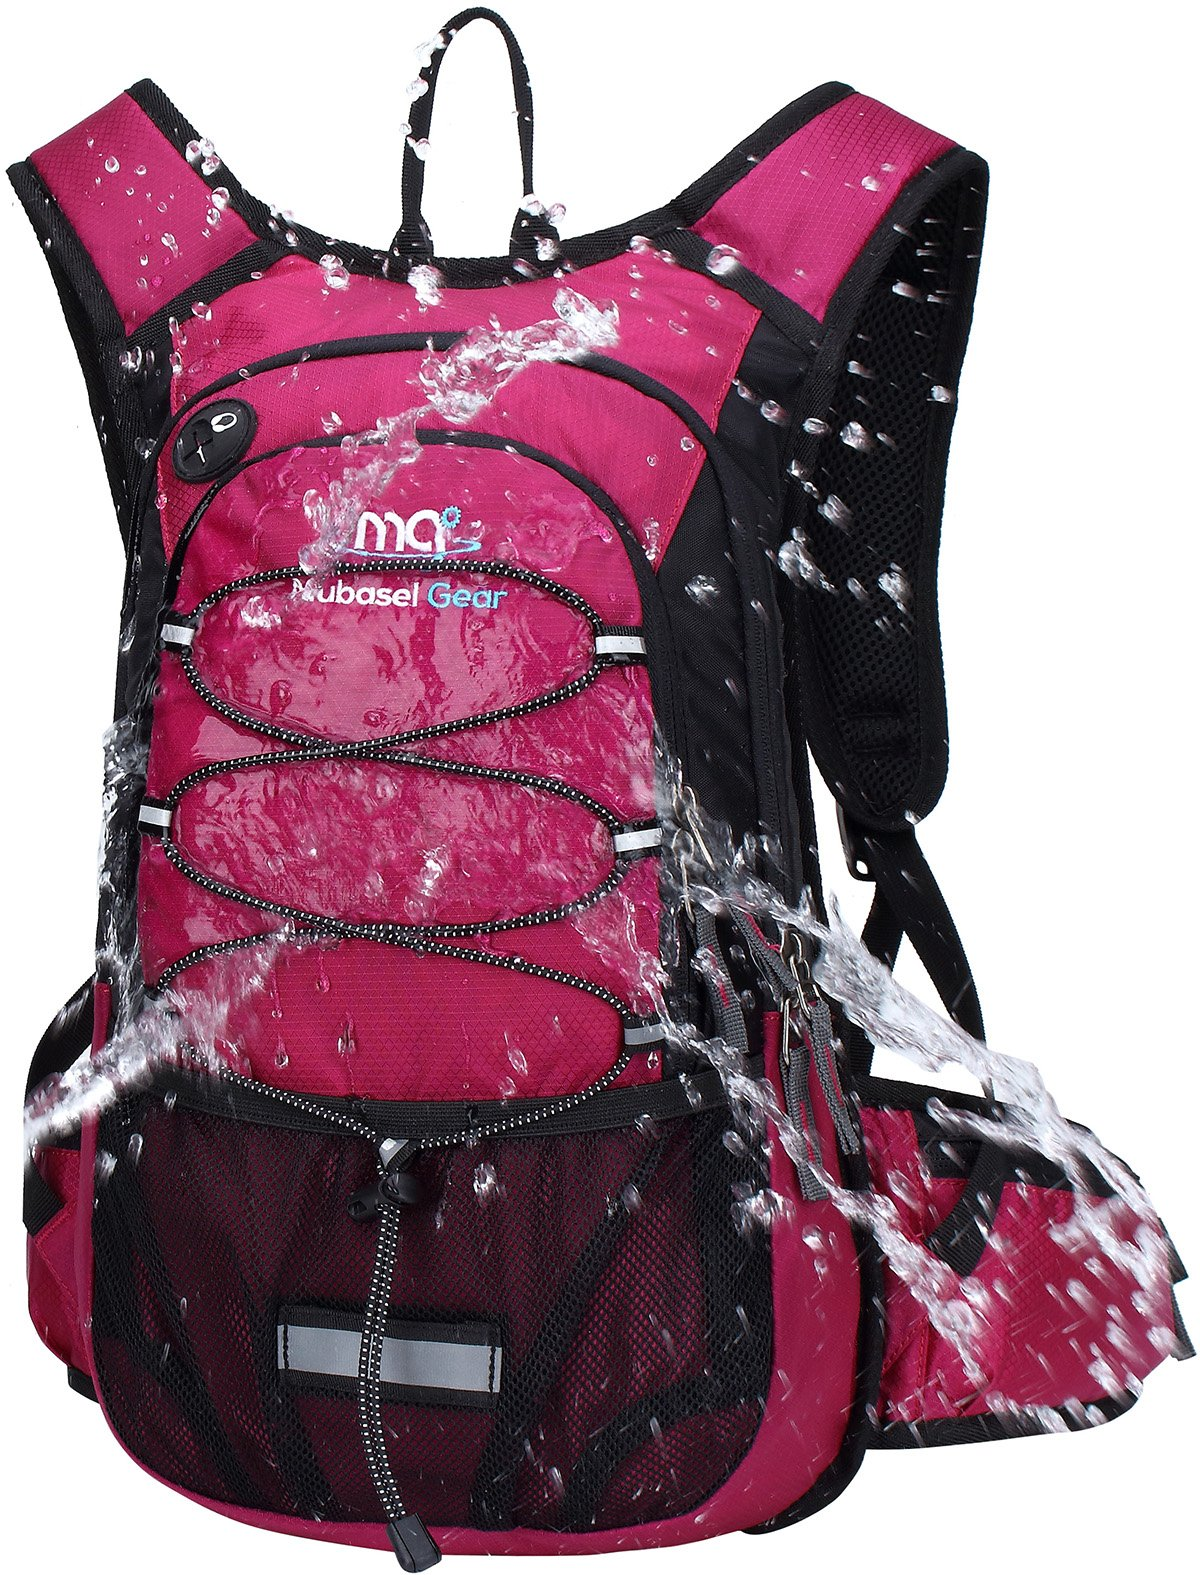 Mubasel Gear Insulated Hydration Backpack Pack with 2L BPA Free Bladder - Keeps Liquid Cool up to 4 Hours - for Running, Hiking, Cycling, Camping (Purple) by Mubasel Gear